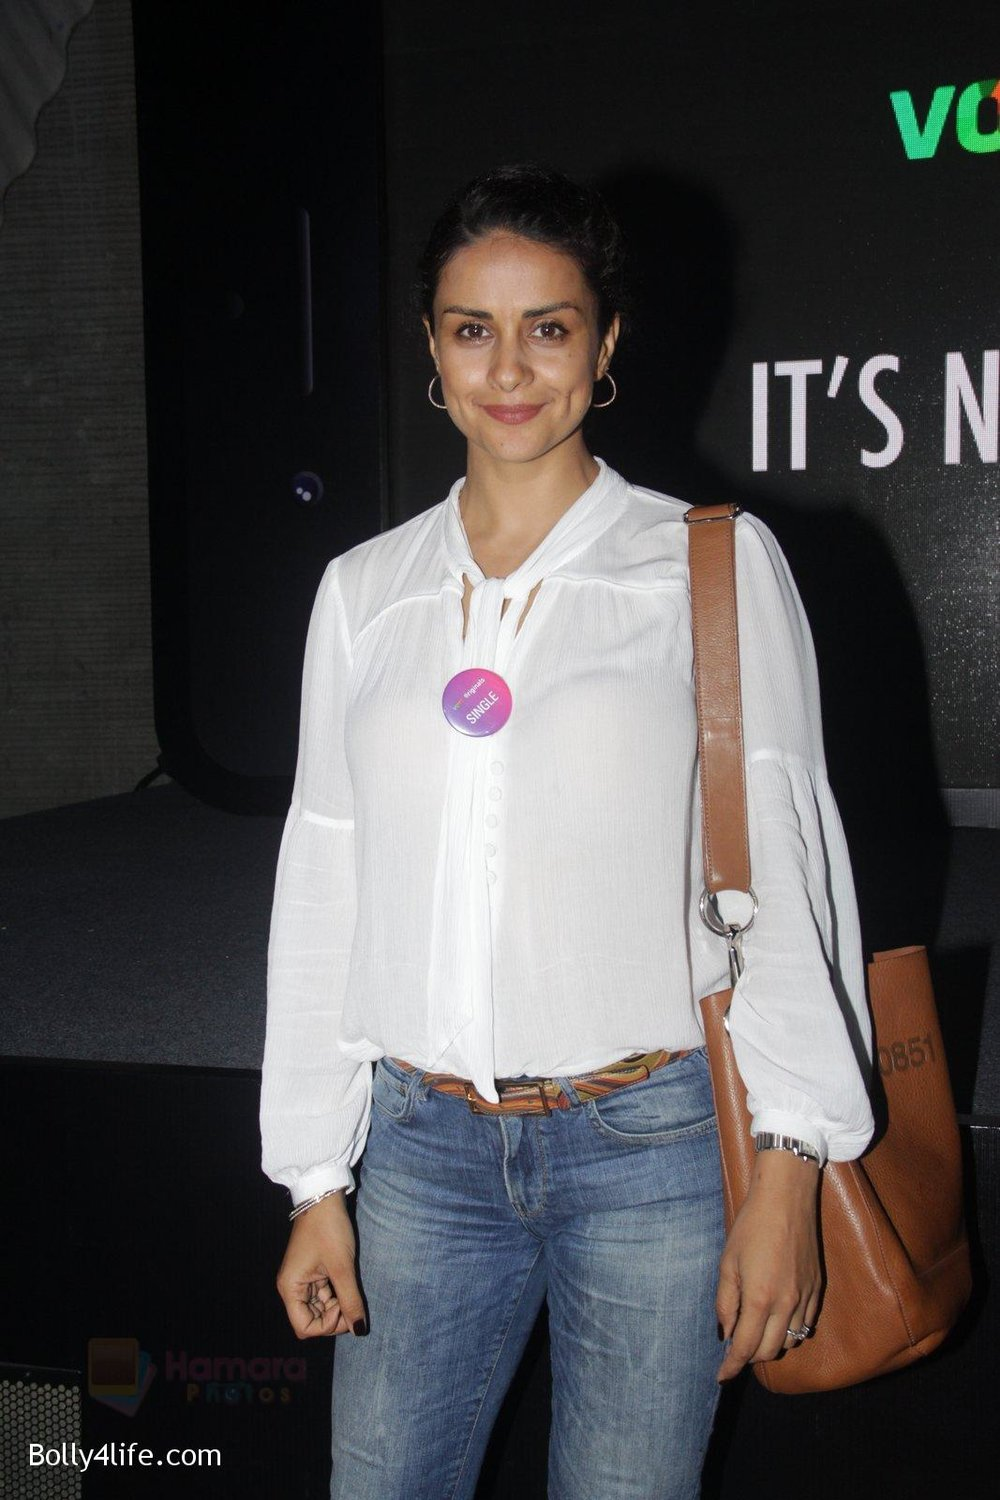 Gul-Panag-at-the-screening-of-It's-Not-That-Simple-on-3rd-Oct-2016-51.jpg